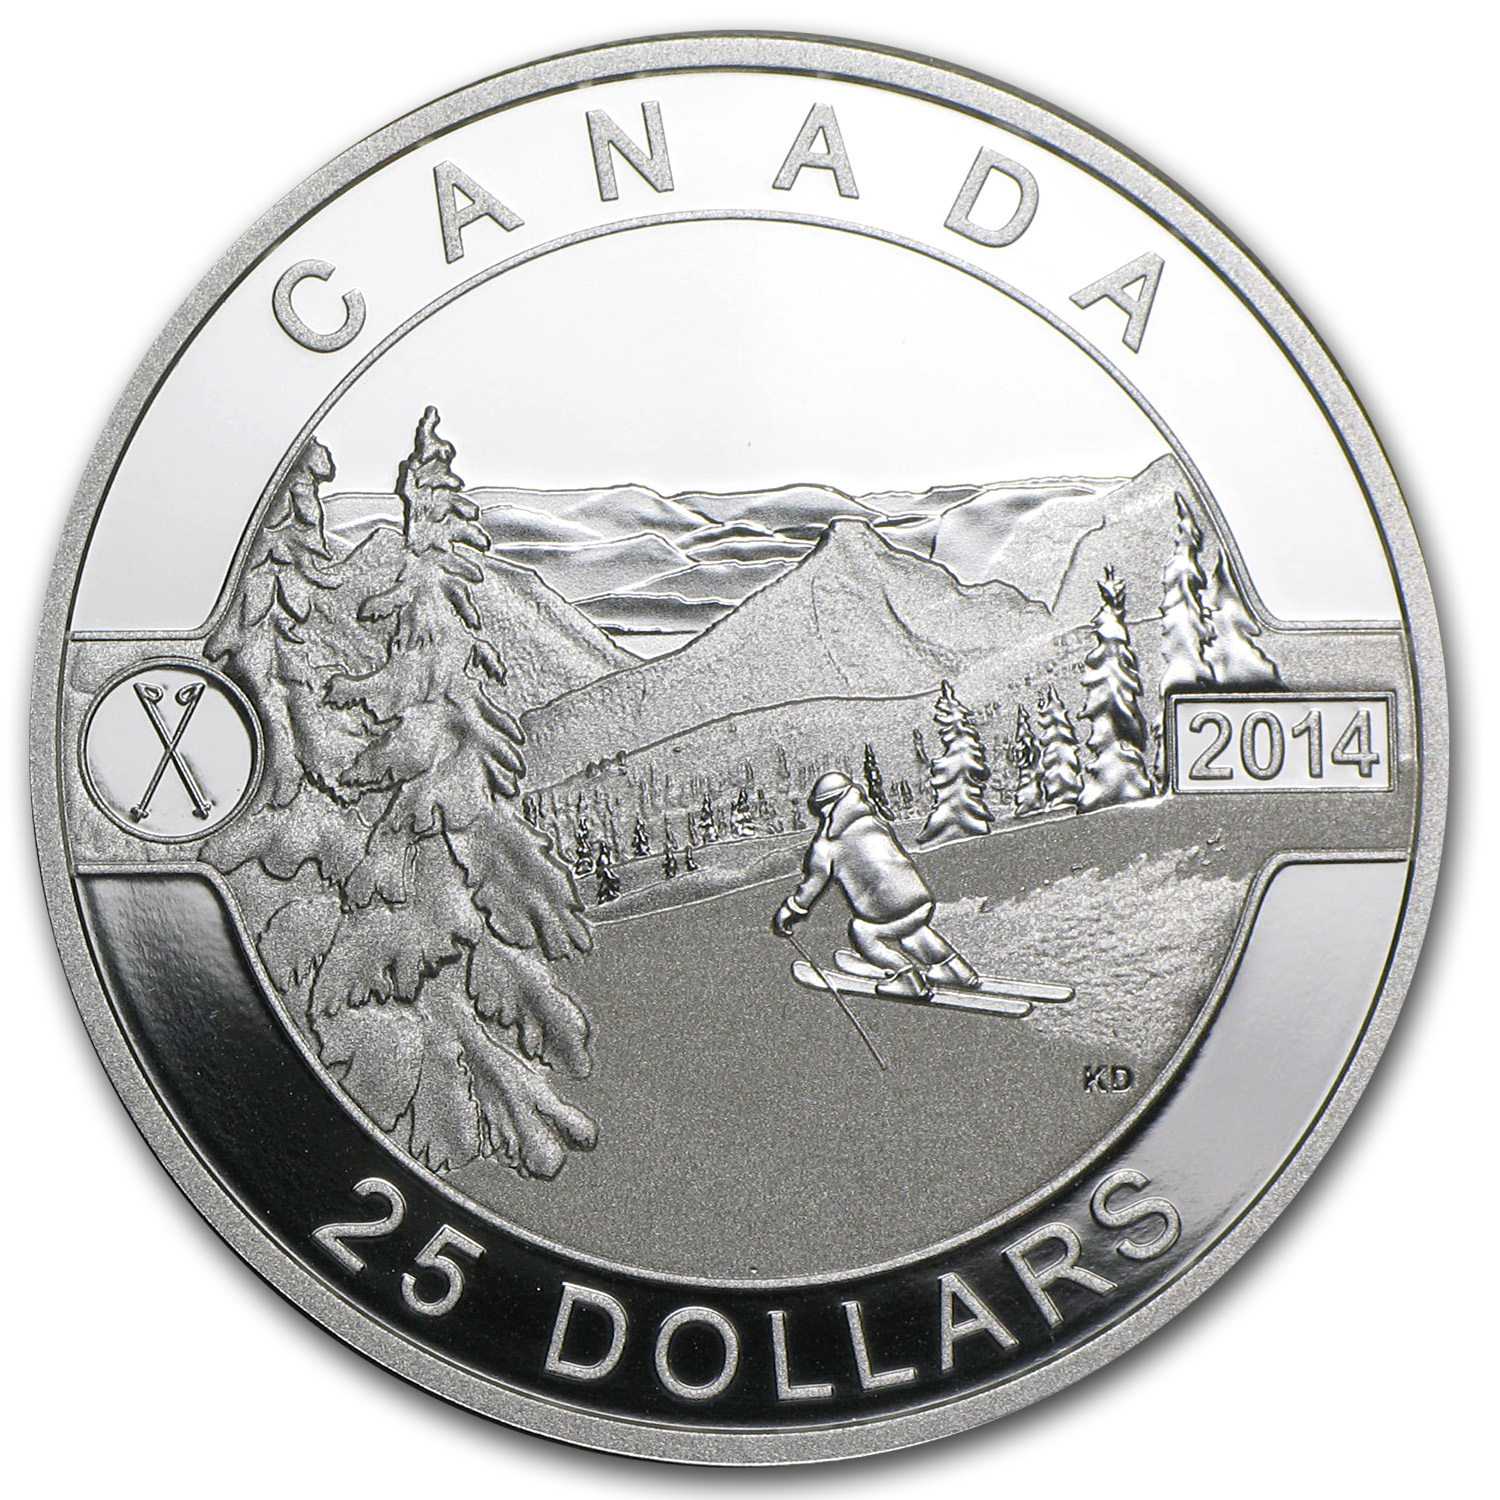 2014 1 oz Silver Canadian $25 Scenic Skiing in Canada